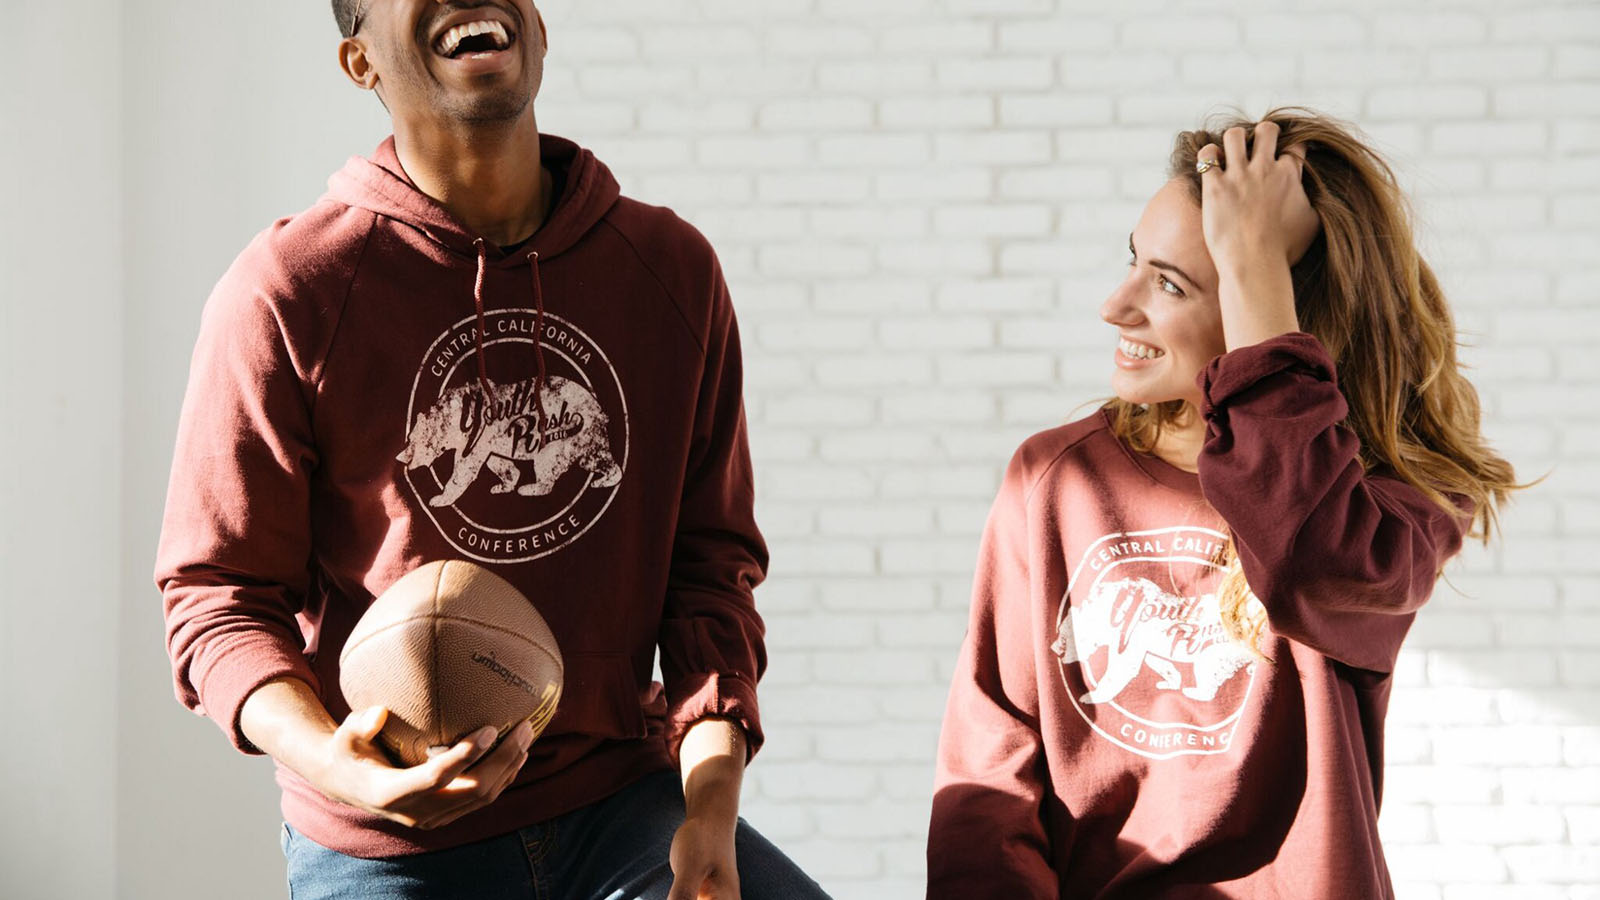 Best Of: Our Favorite Hoodies For The Holidays